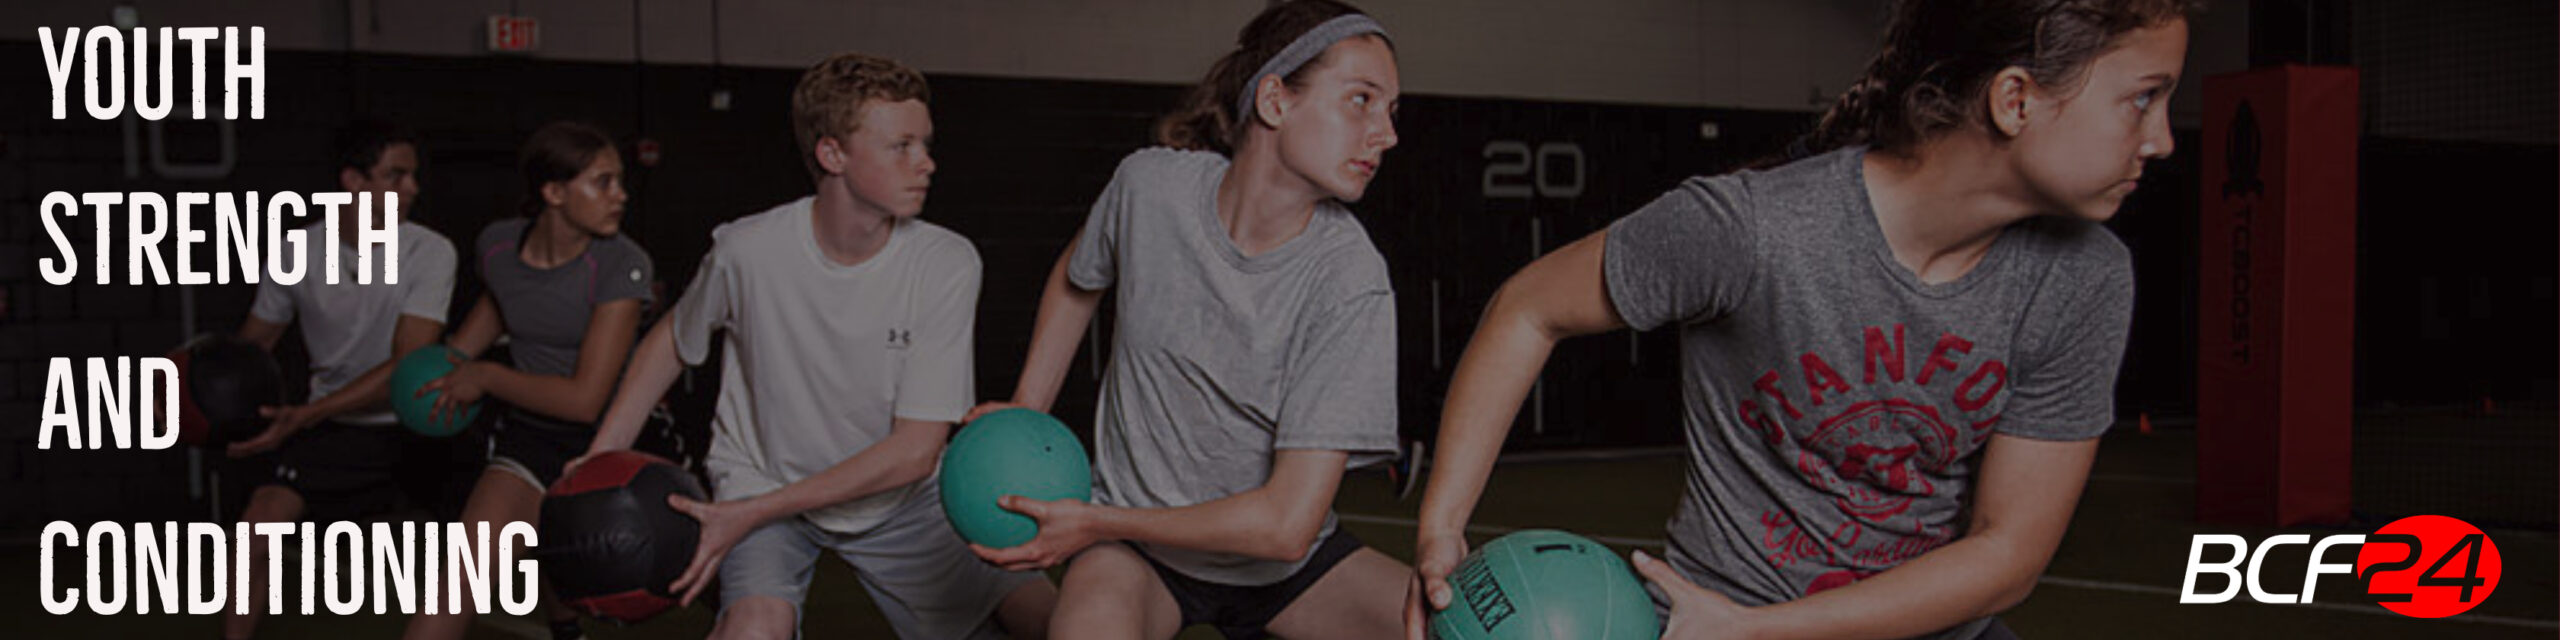 Youth Strength and Conditioning Classes in Colora MD, Youth Strength and Conditioning Classes near Rising Sun MD, Youth Strength and Conditioning Classes near Perryville MD, Youth Strength and Conditioning Classes near Oxford MD